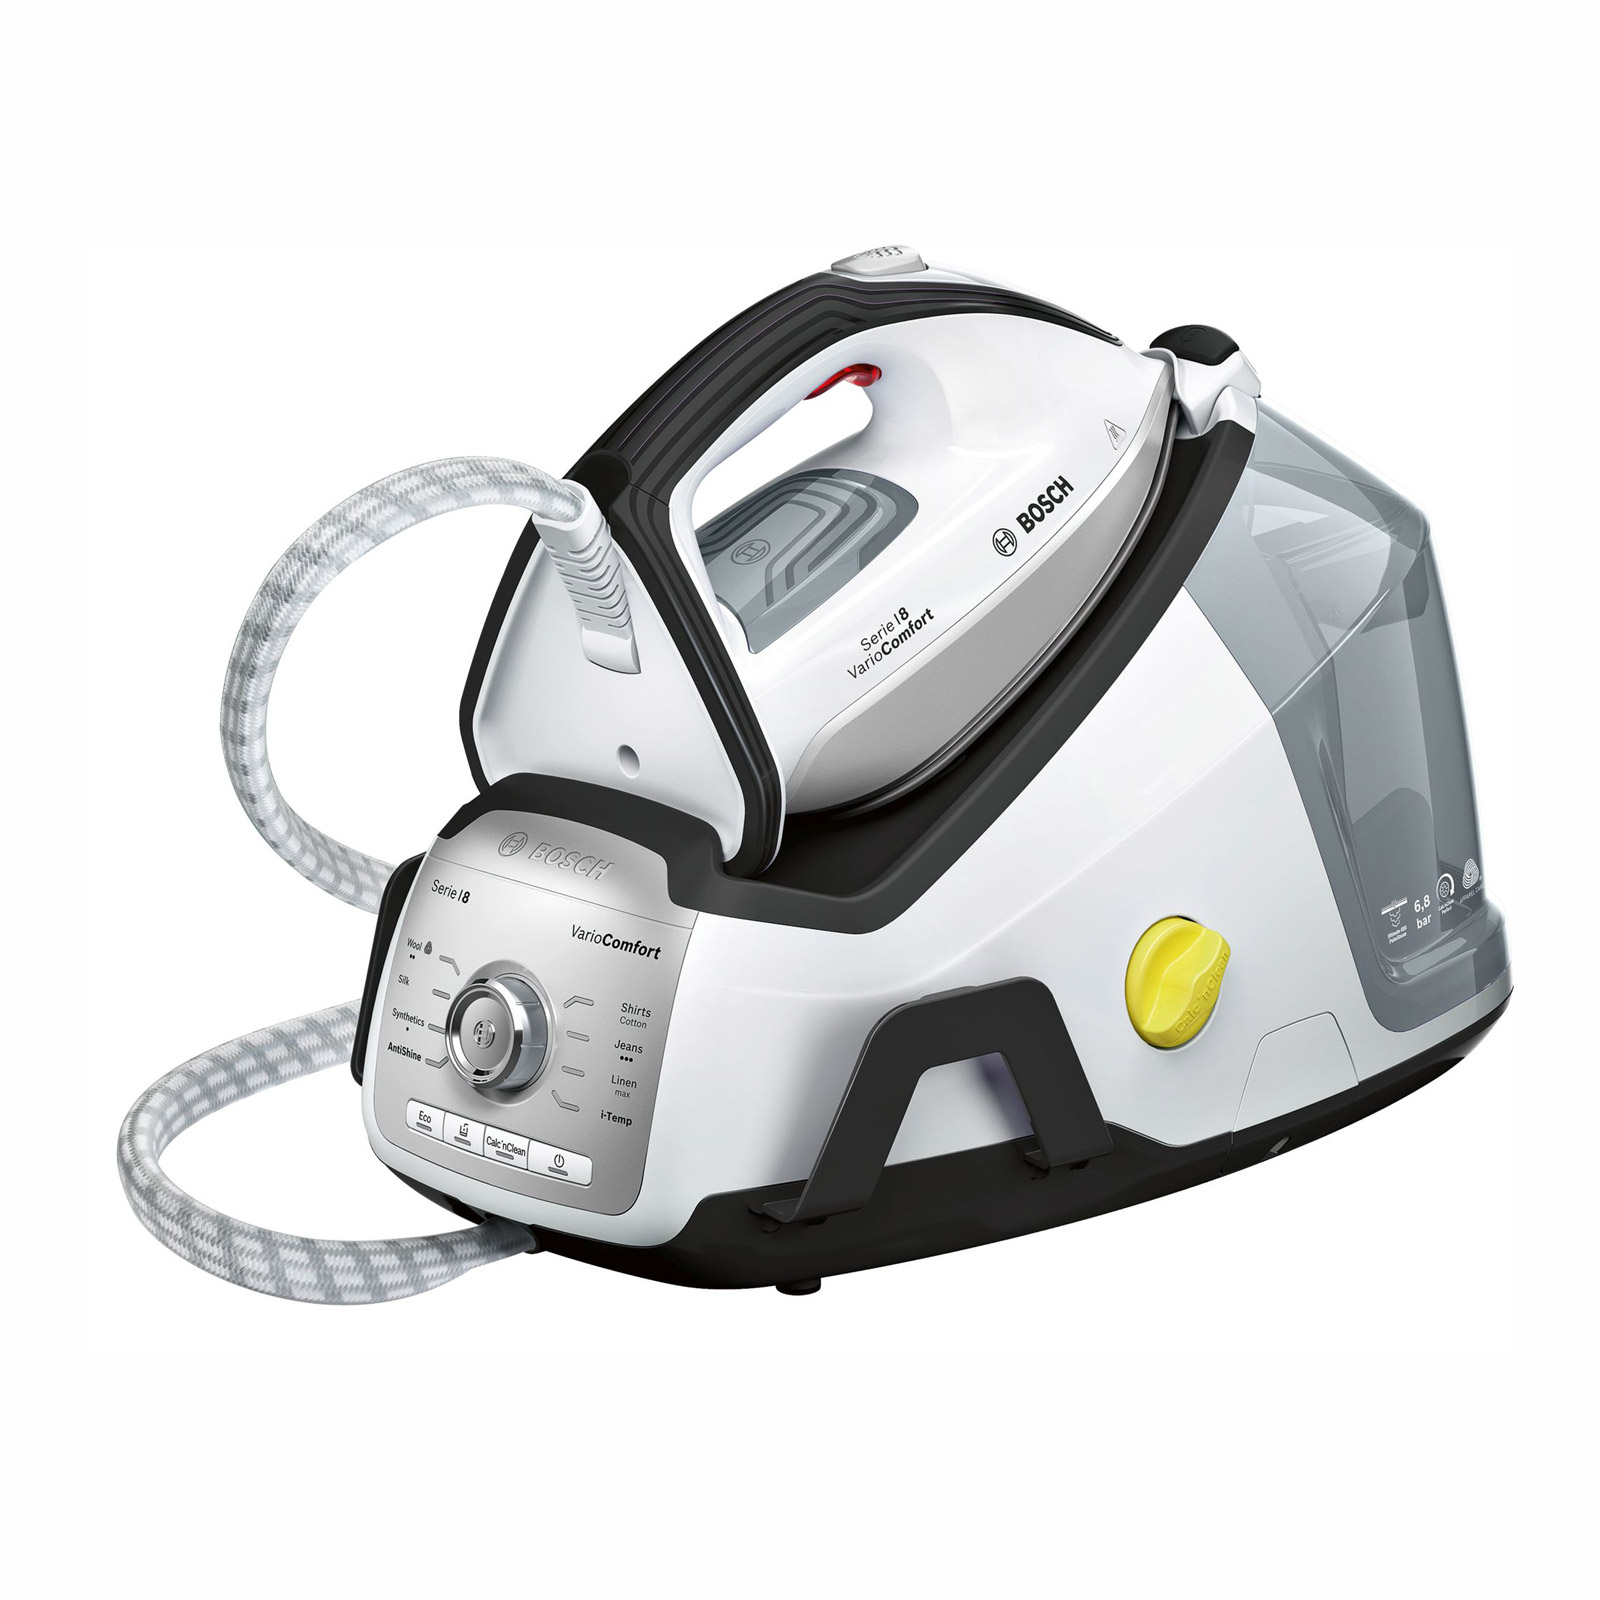 Bosch TDS8030GB VarioComfort Steam Generator Iron in Black/White